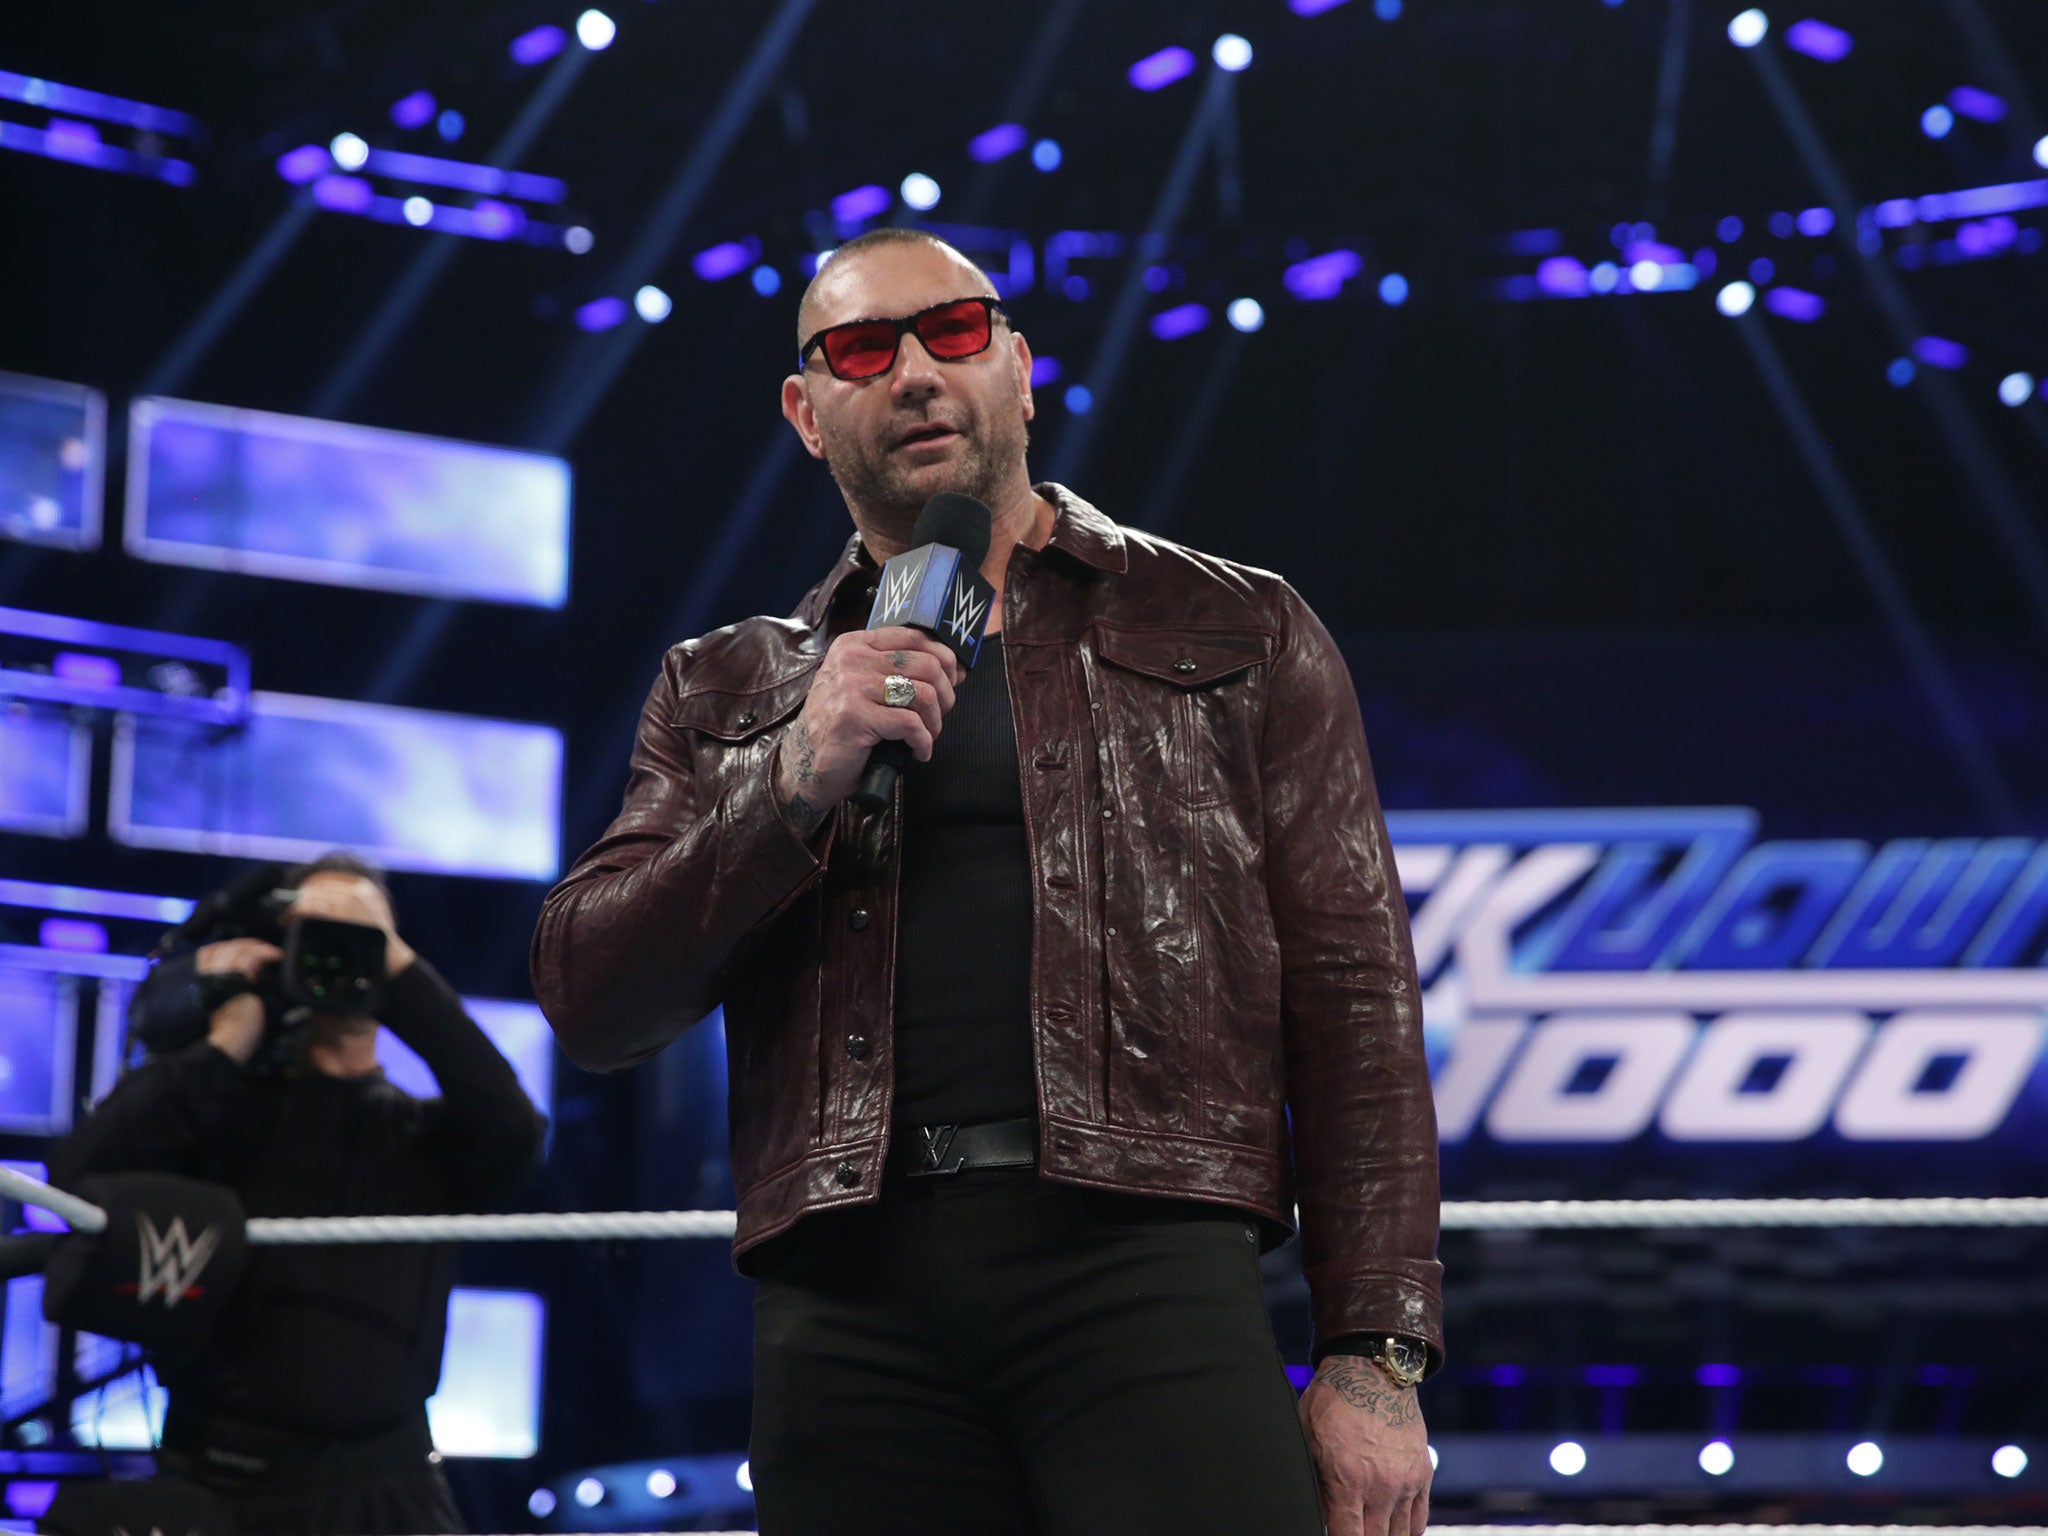 Smackdown 1,000: Hollywood star Batista returns to set up ...